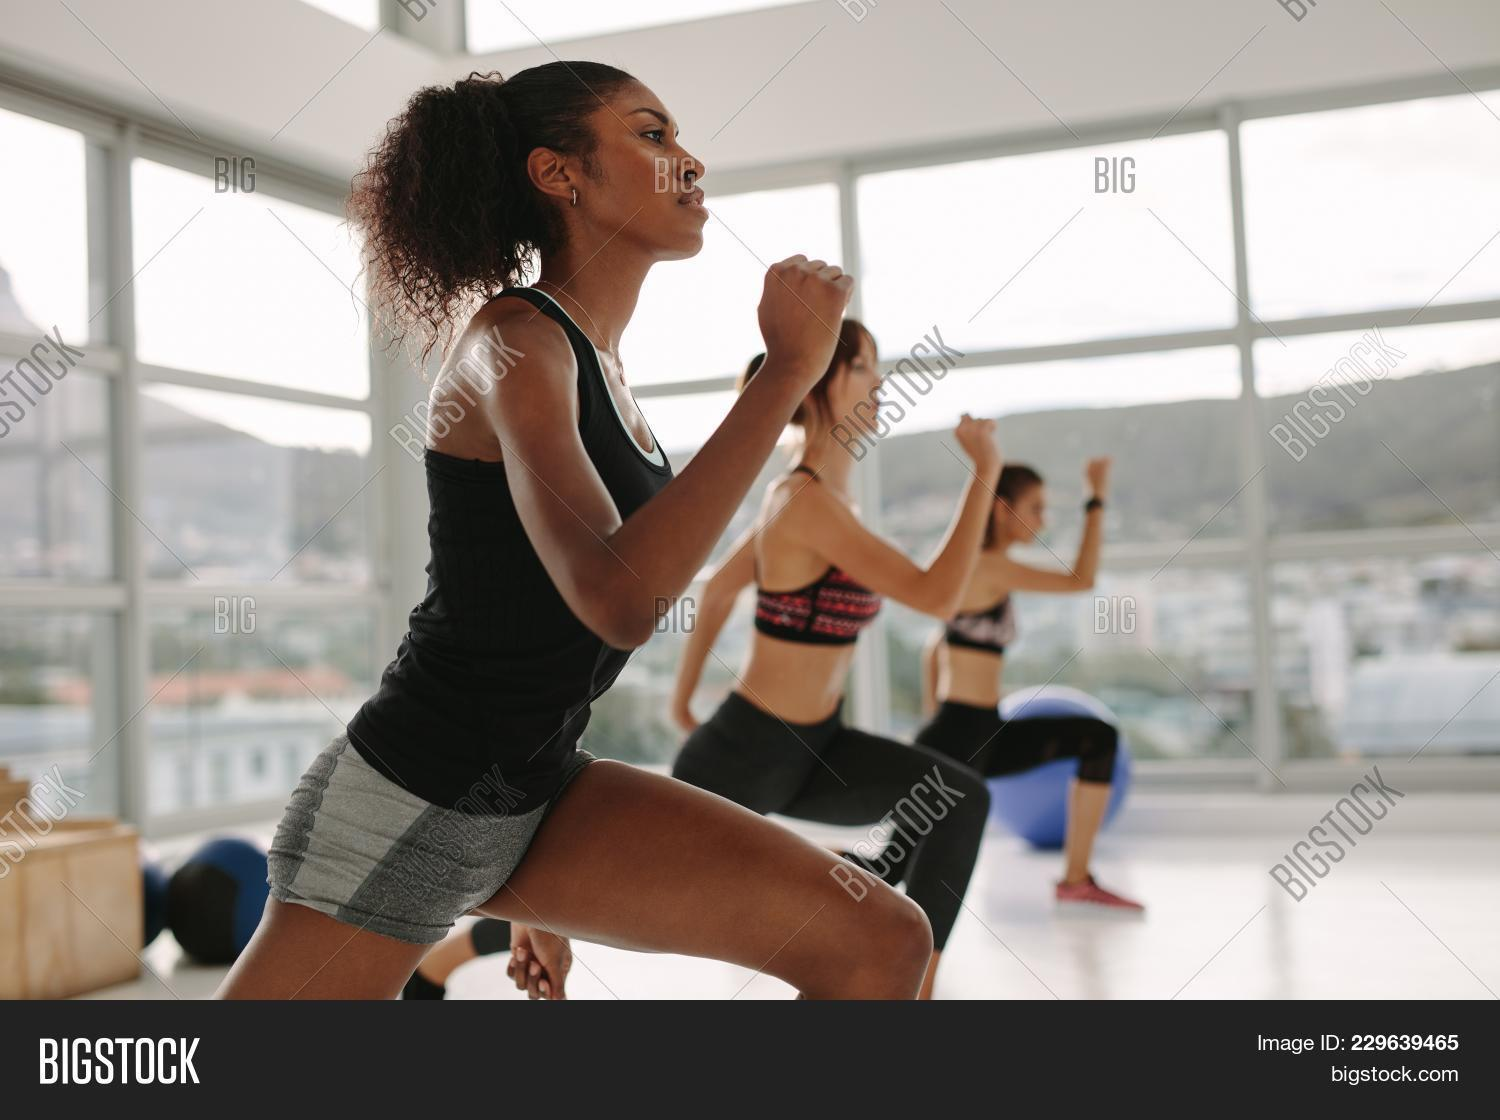 aerobics,body,class,exercise,exercising,female,fit,fitness,girls,group,gym,health,healthy,high,hit,instructor,intensity,lifestyle,multi-ethnic,people,physical,sportswear,stretching,studio,training,woman,women,workout,young